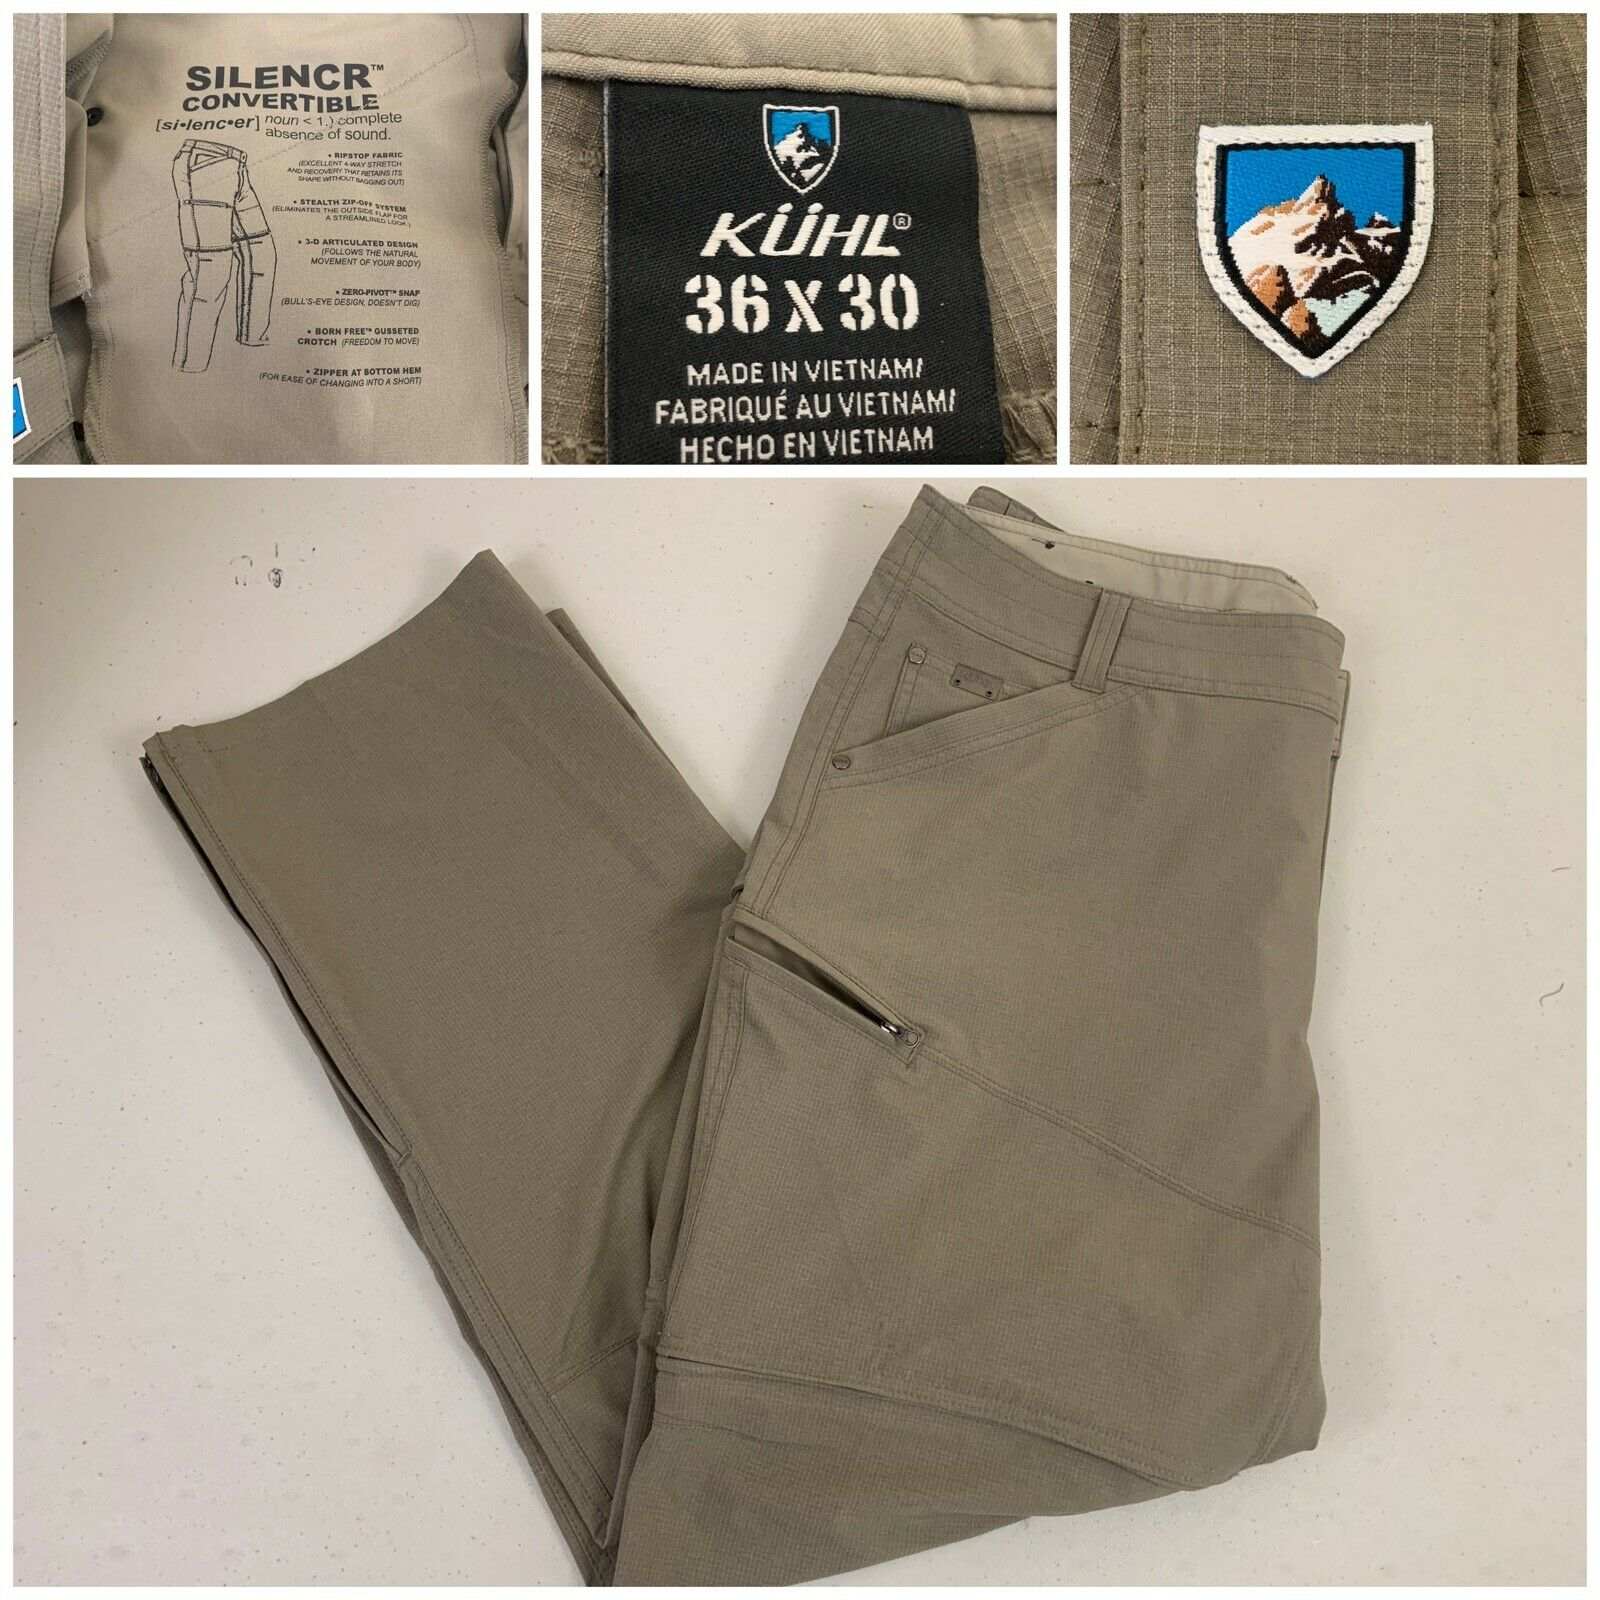 Kuhl Men Silencr Hiking Pants 36x30 Grey   -Brownish - Excellent Condition  beautiful